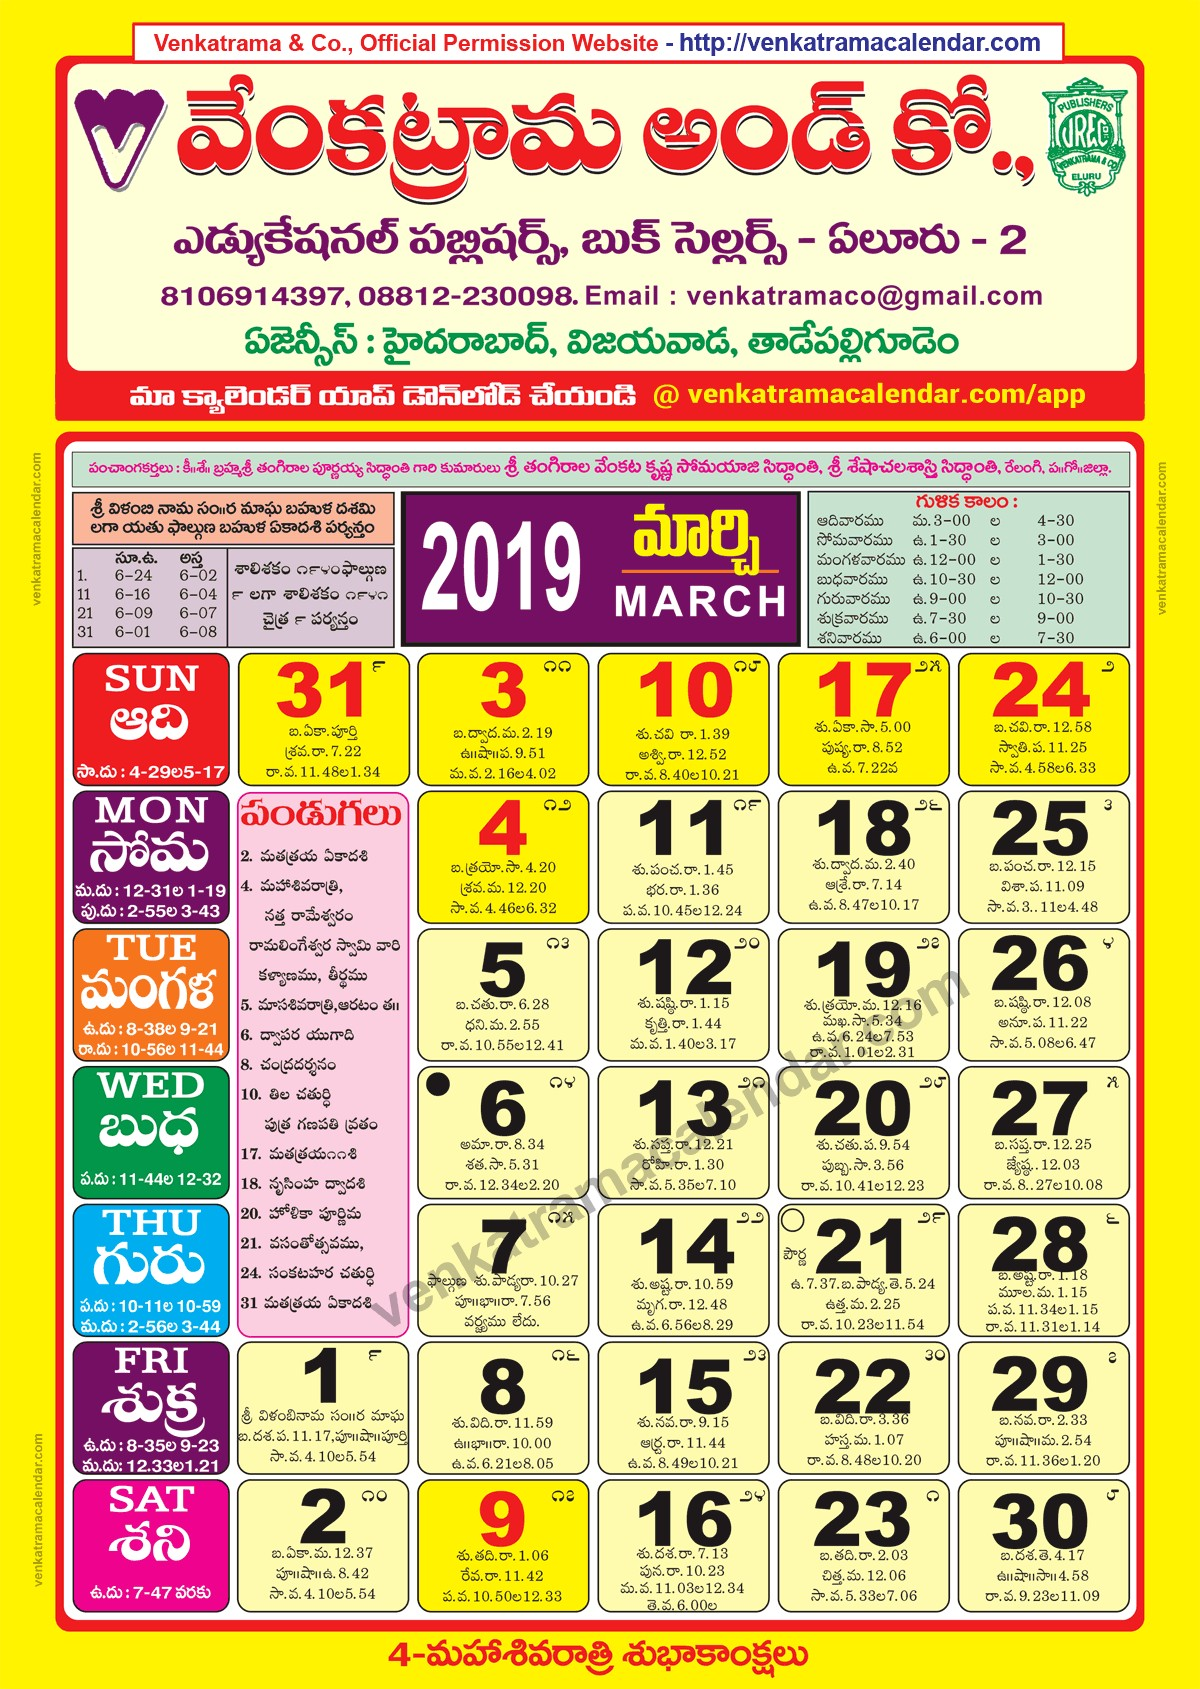 March Calendar 2019 Más Recientemente Liberado Venkatrama Co 2019 March Telugu Calendar Colour Of March Calendar 2019 Más Populares March 2019 Calendar Pdf Word Excel